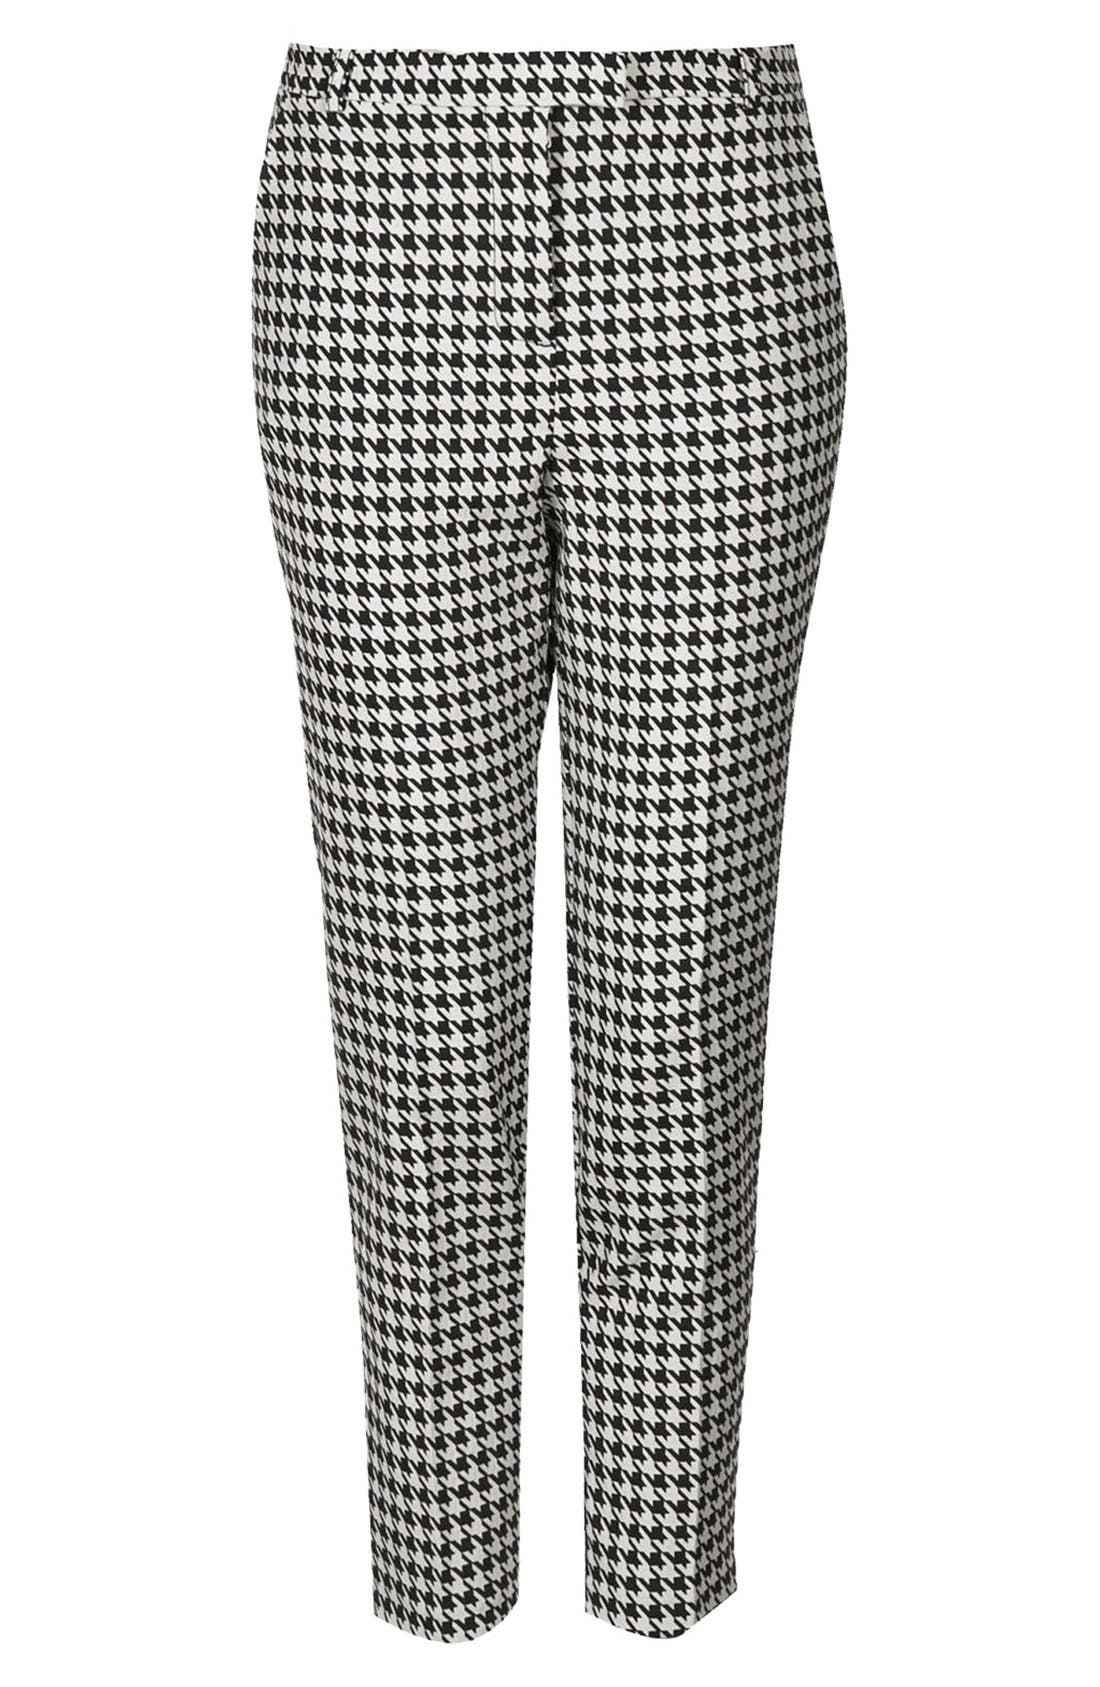 Alternate Image 3  - Topshop Houndstooth Cigarette Trousers